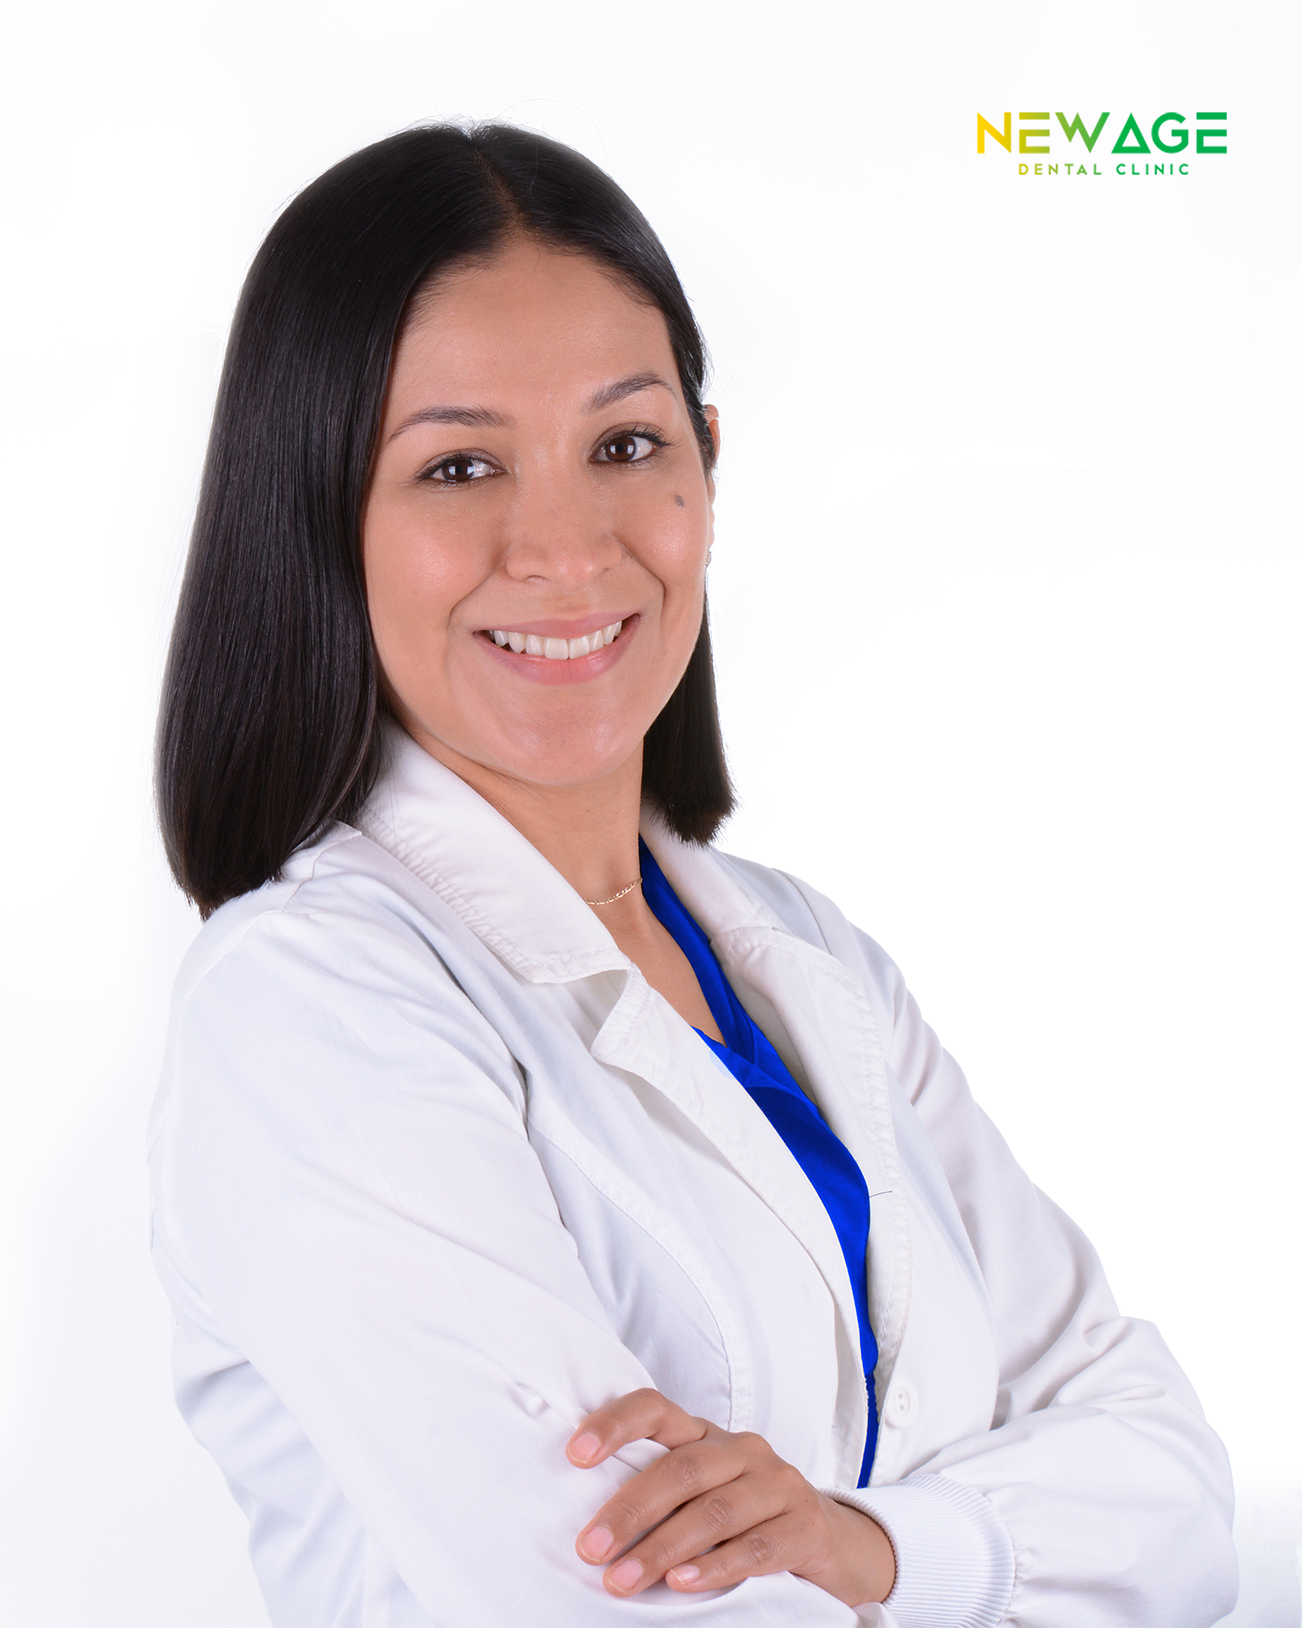 Dr. Alexia Pacheco, Endodontics Specialist at New Age Dental Clinic in Tijuana